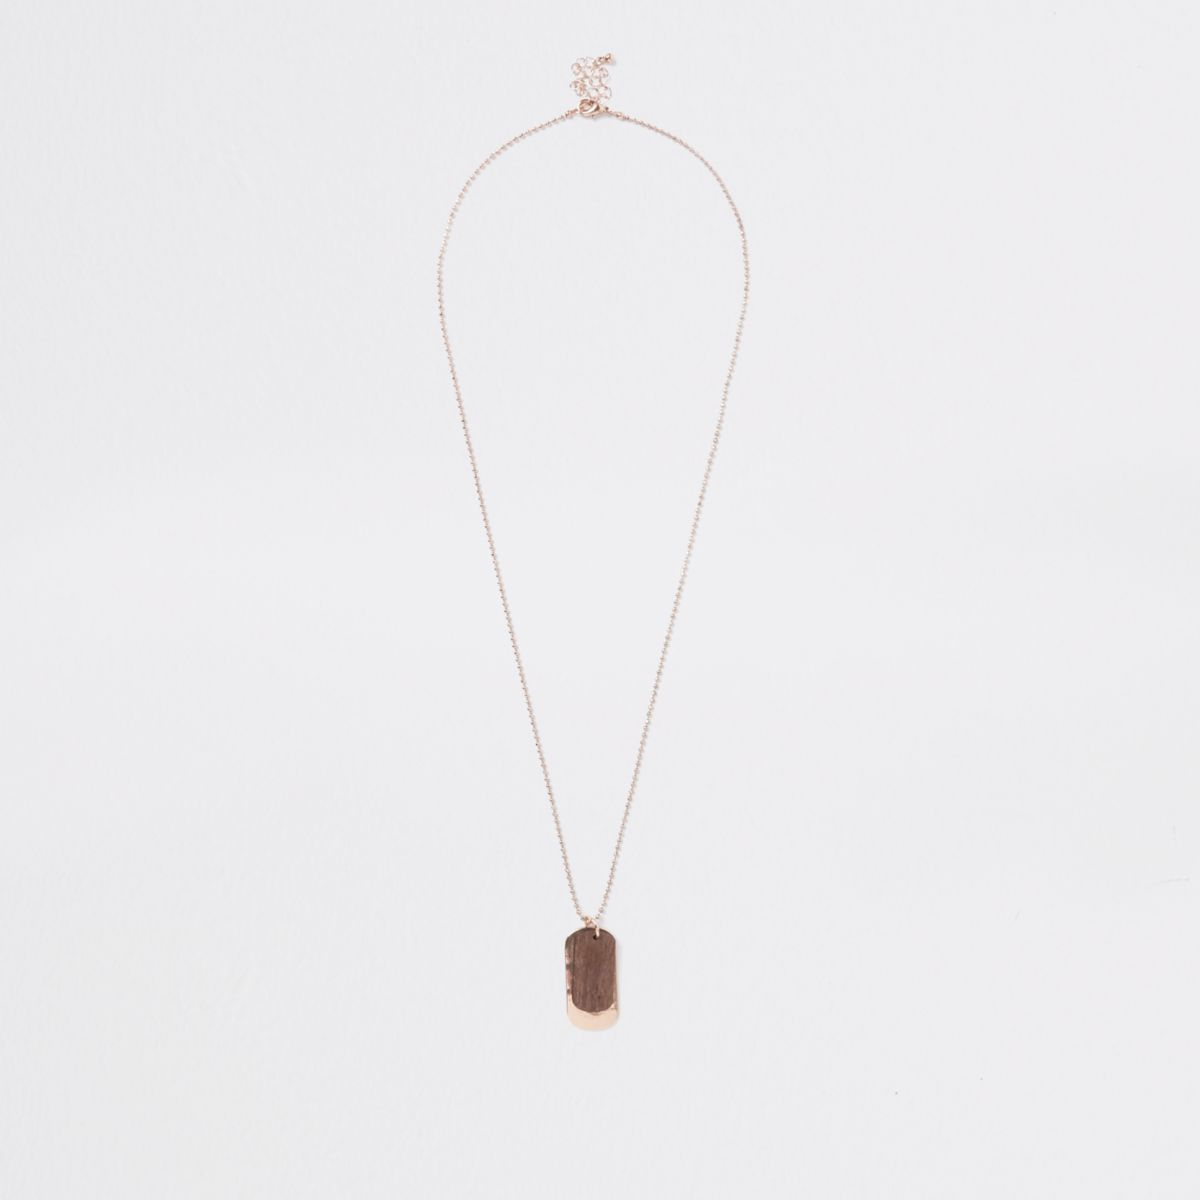 Gold tone wooden dog tag necklace